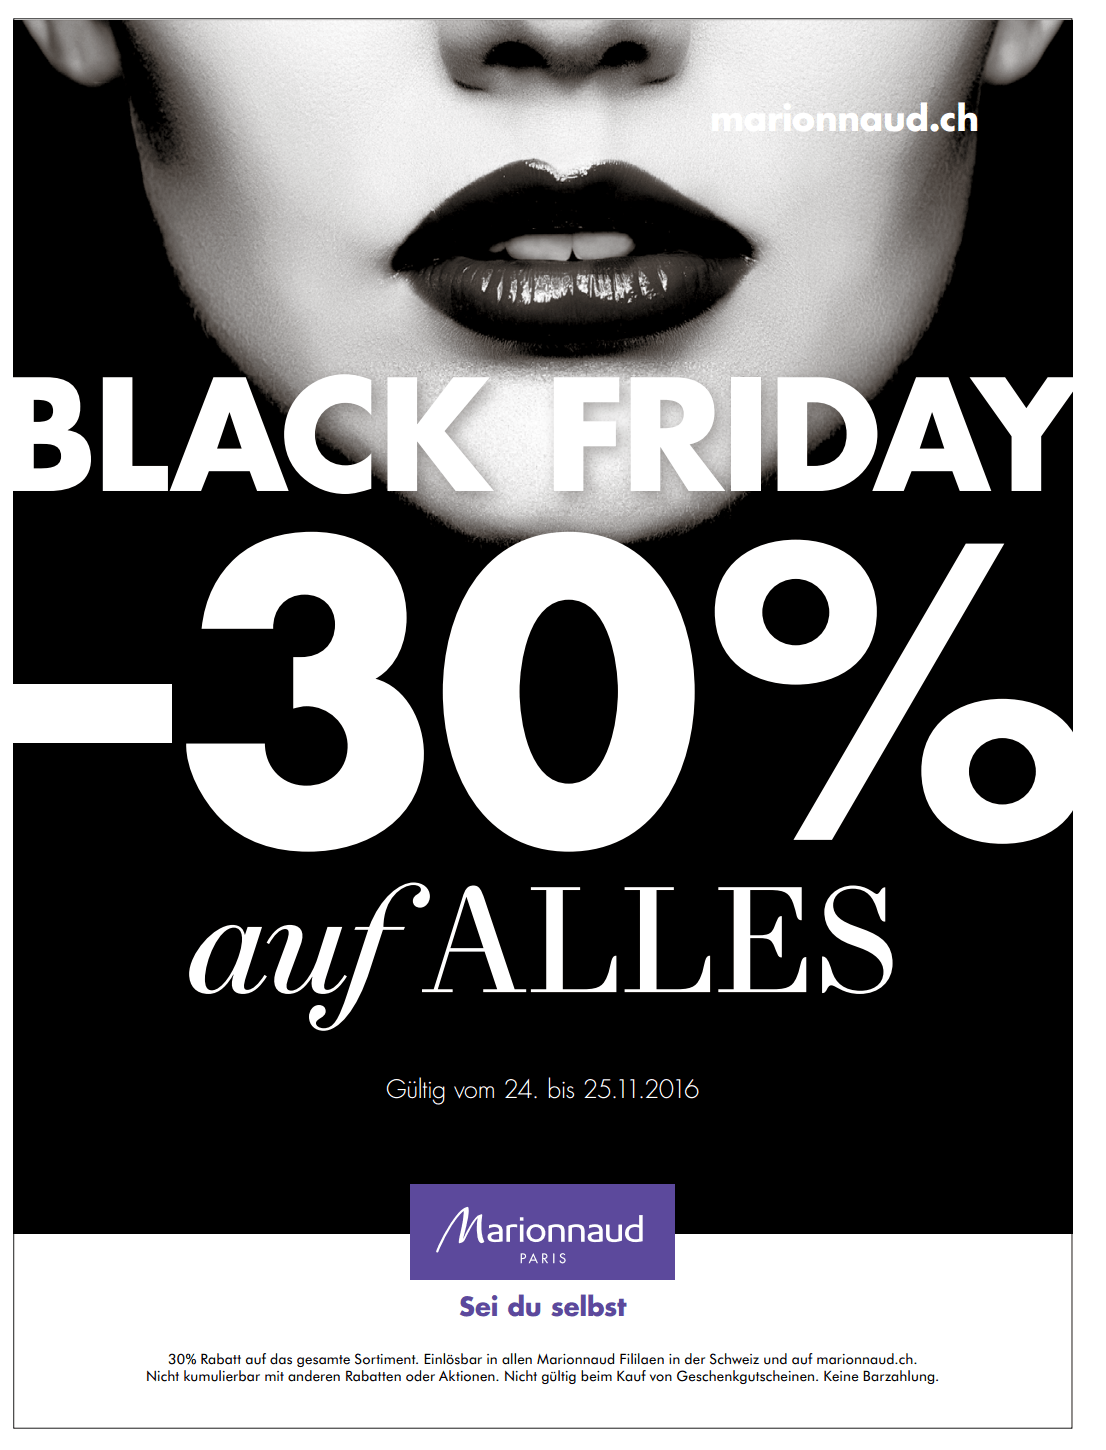 Black Friday Angebot Marionnaud Black Friday 2019 Alle Infos And Gutscheincodes